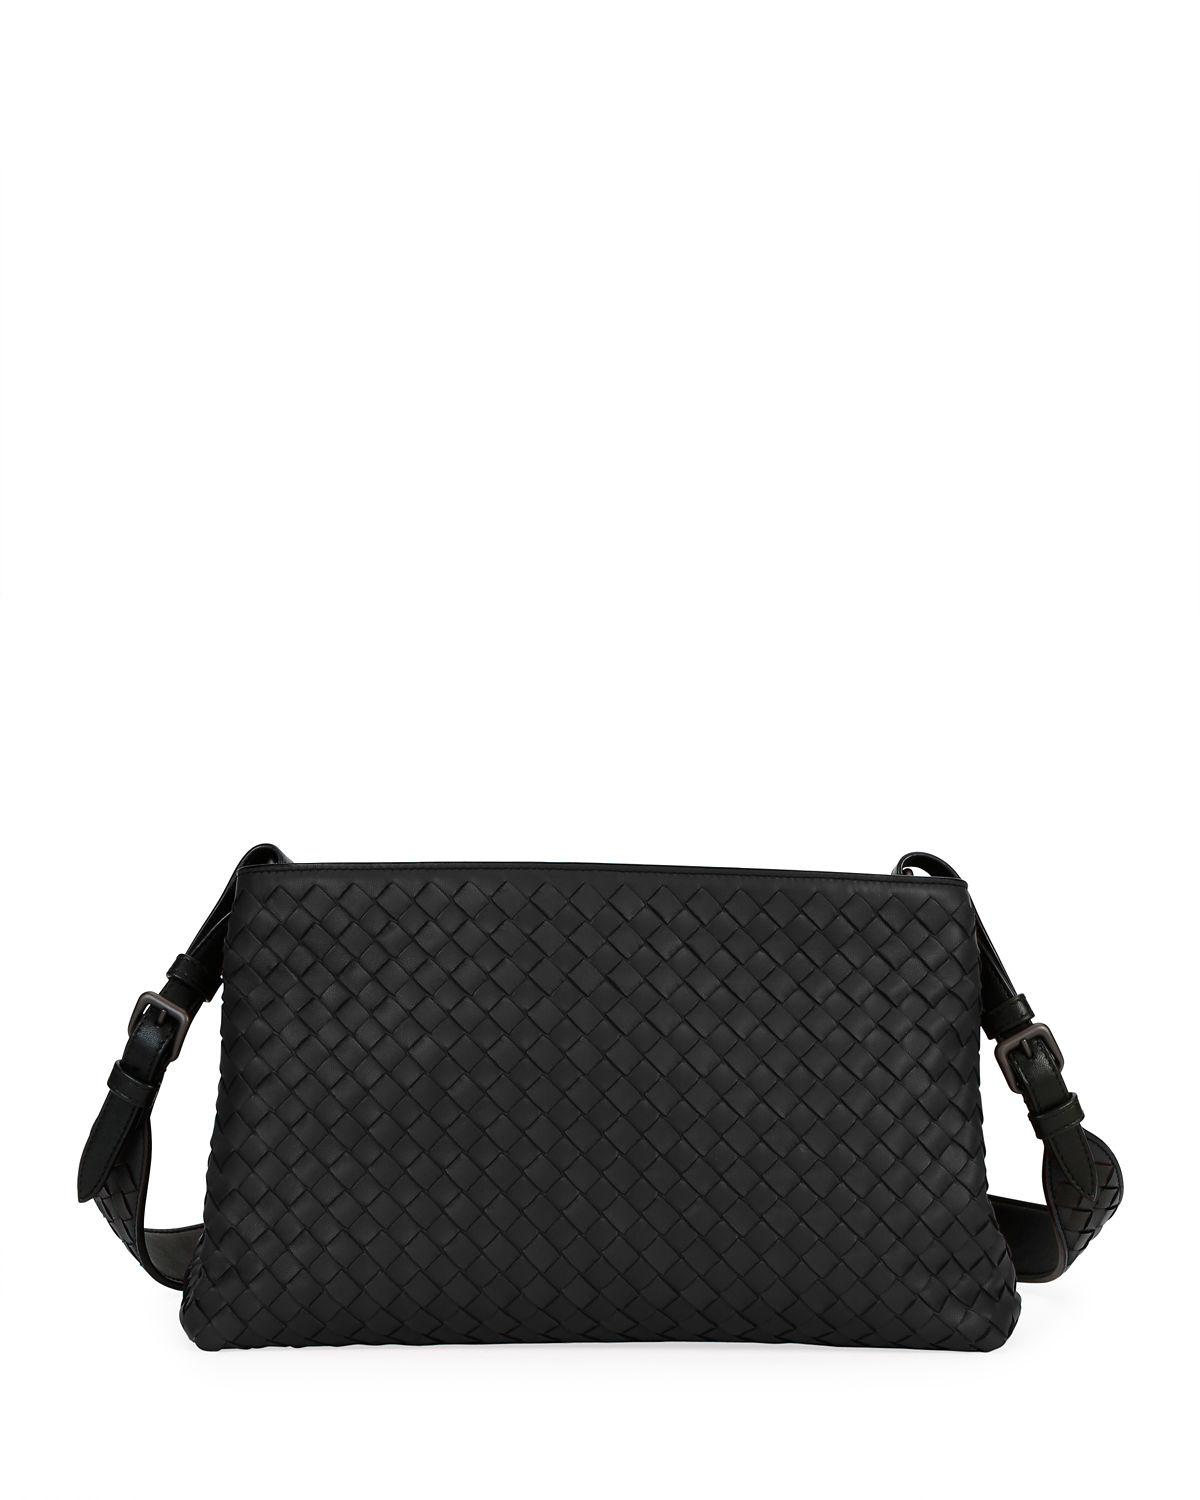 Bottega Veneta Intrecciato Leather Tote Bag In Black